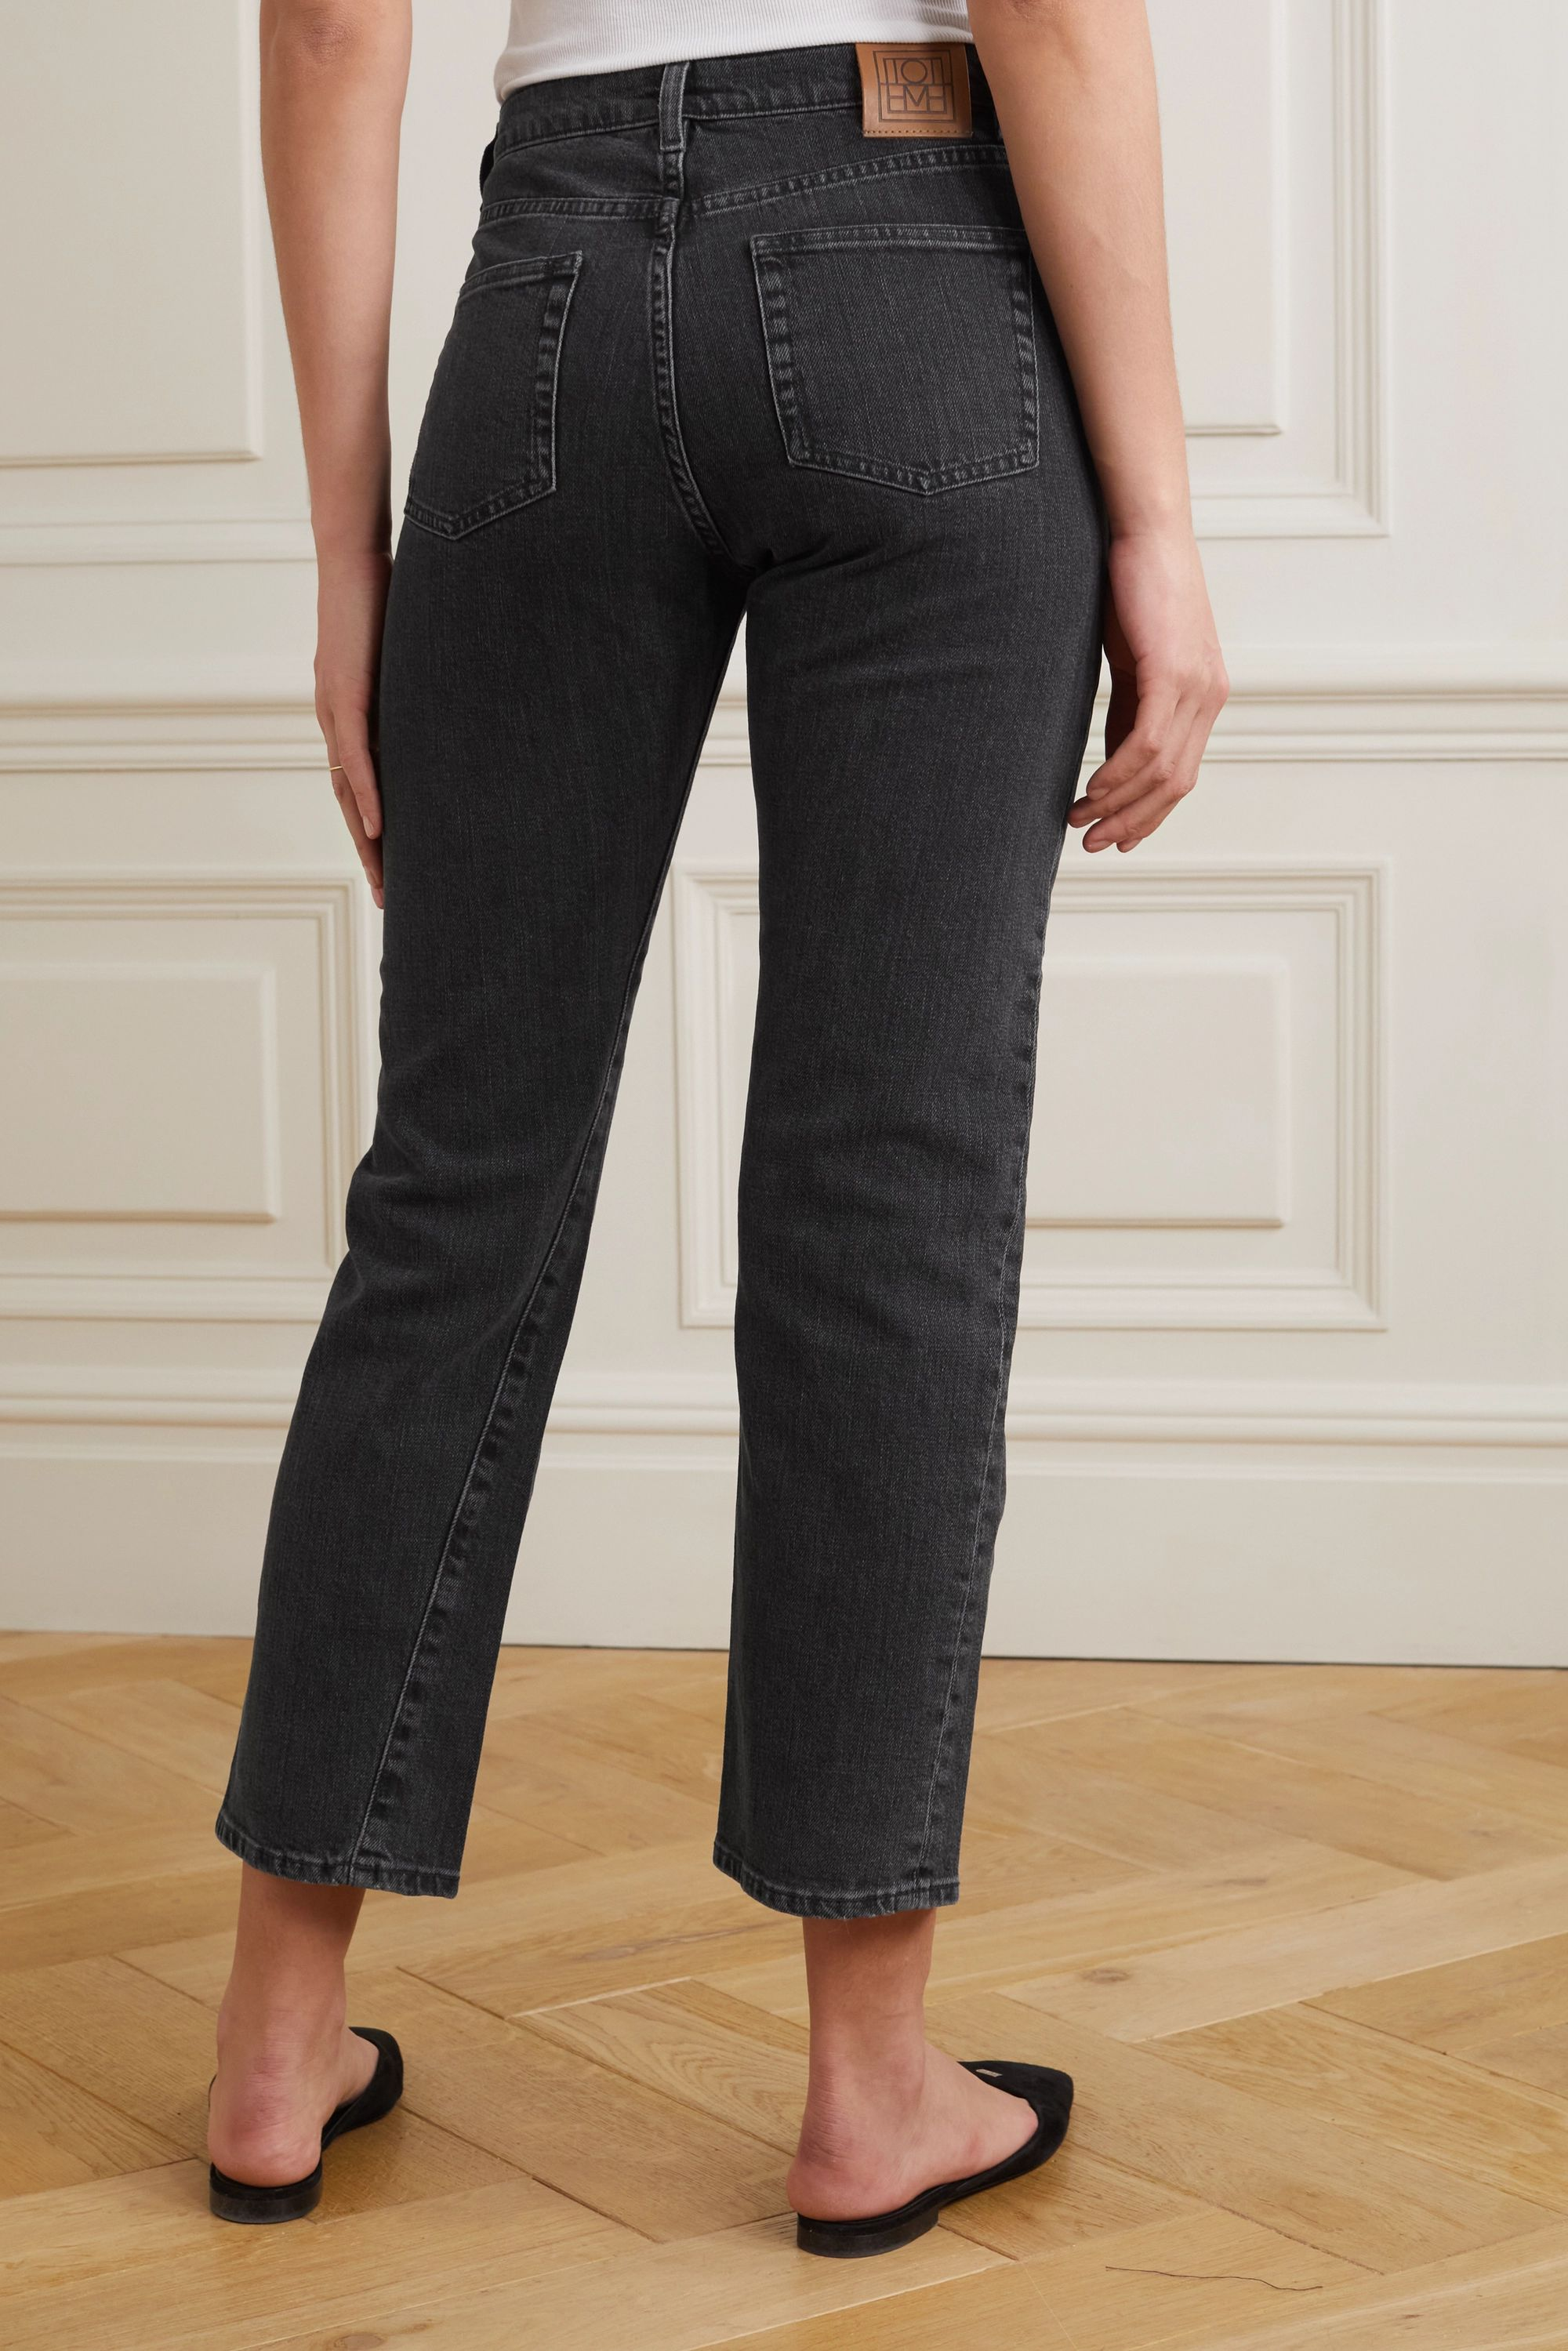 Totême Original high-rise straight-leg jeans